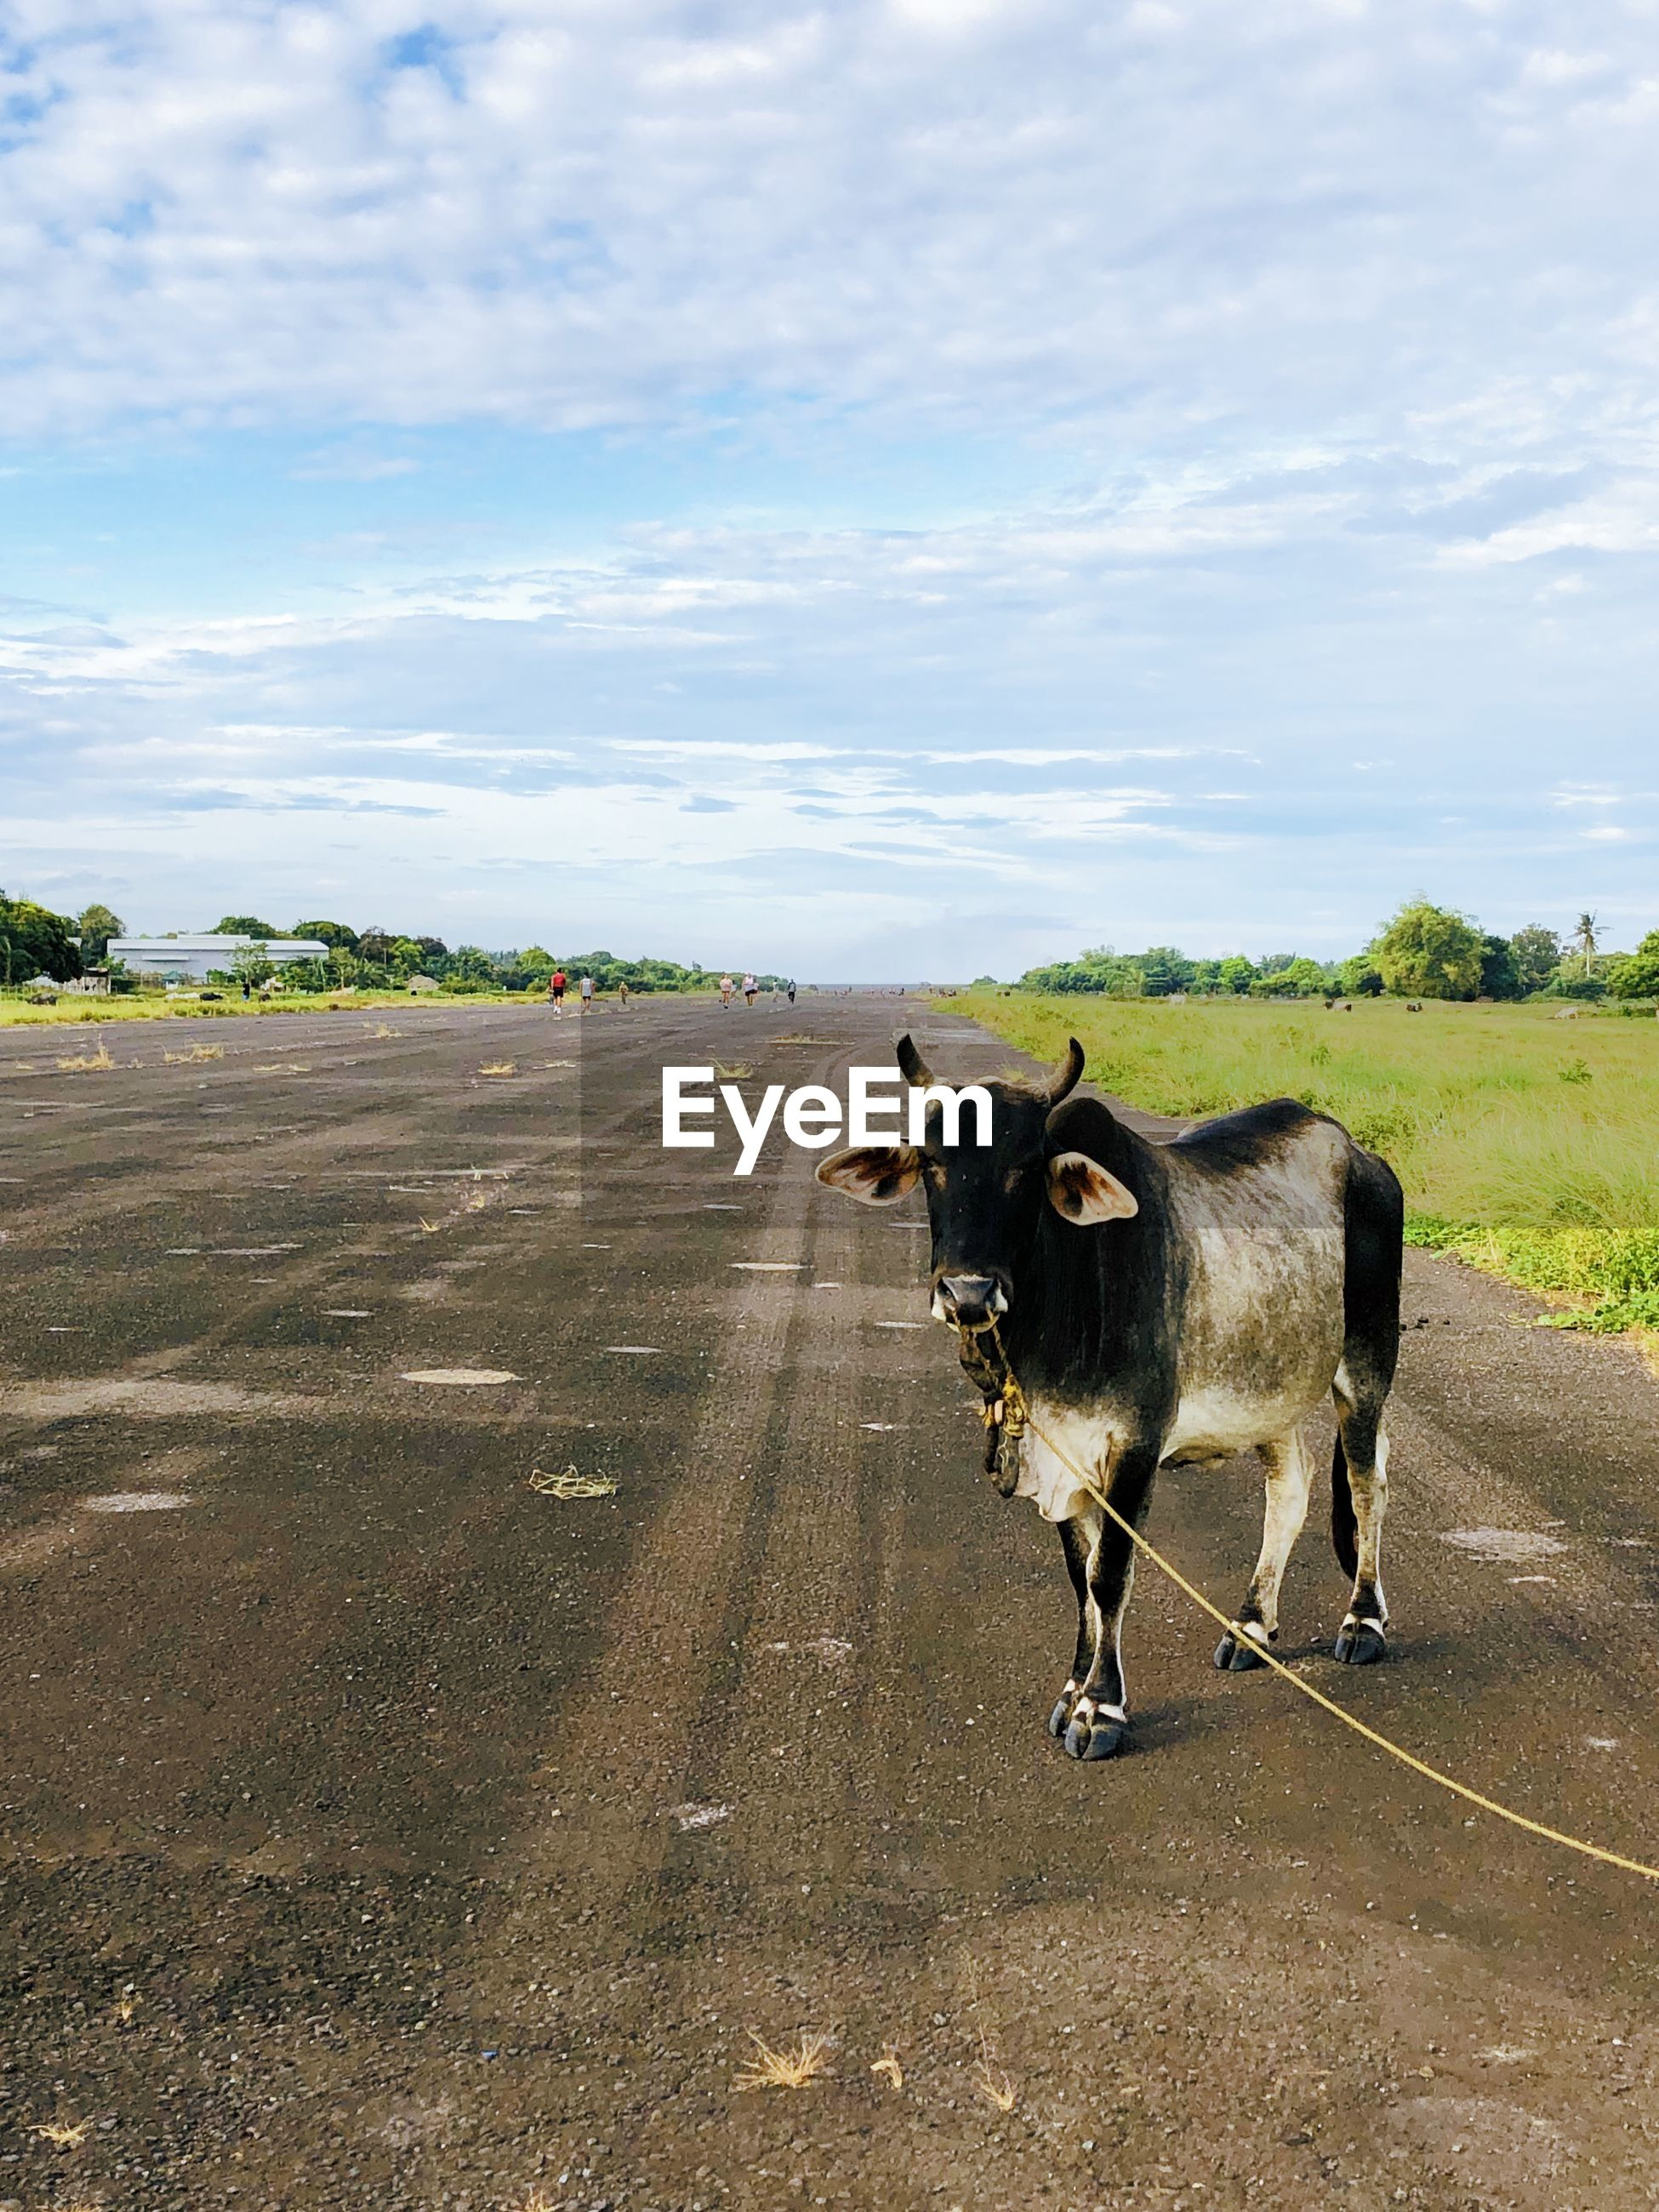 HORSE STANDING ON ROAD AMIDST LAND